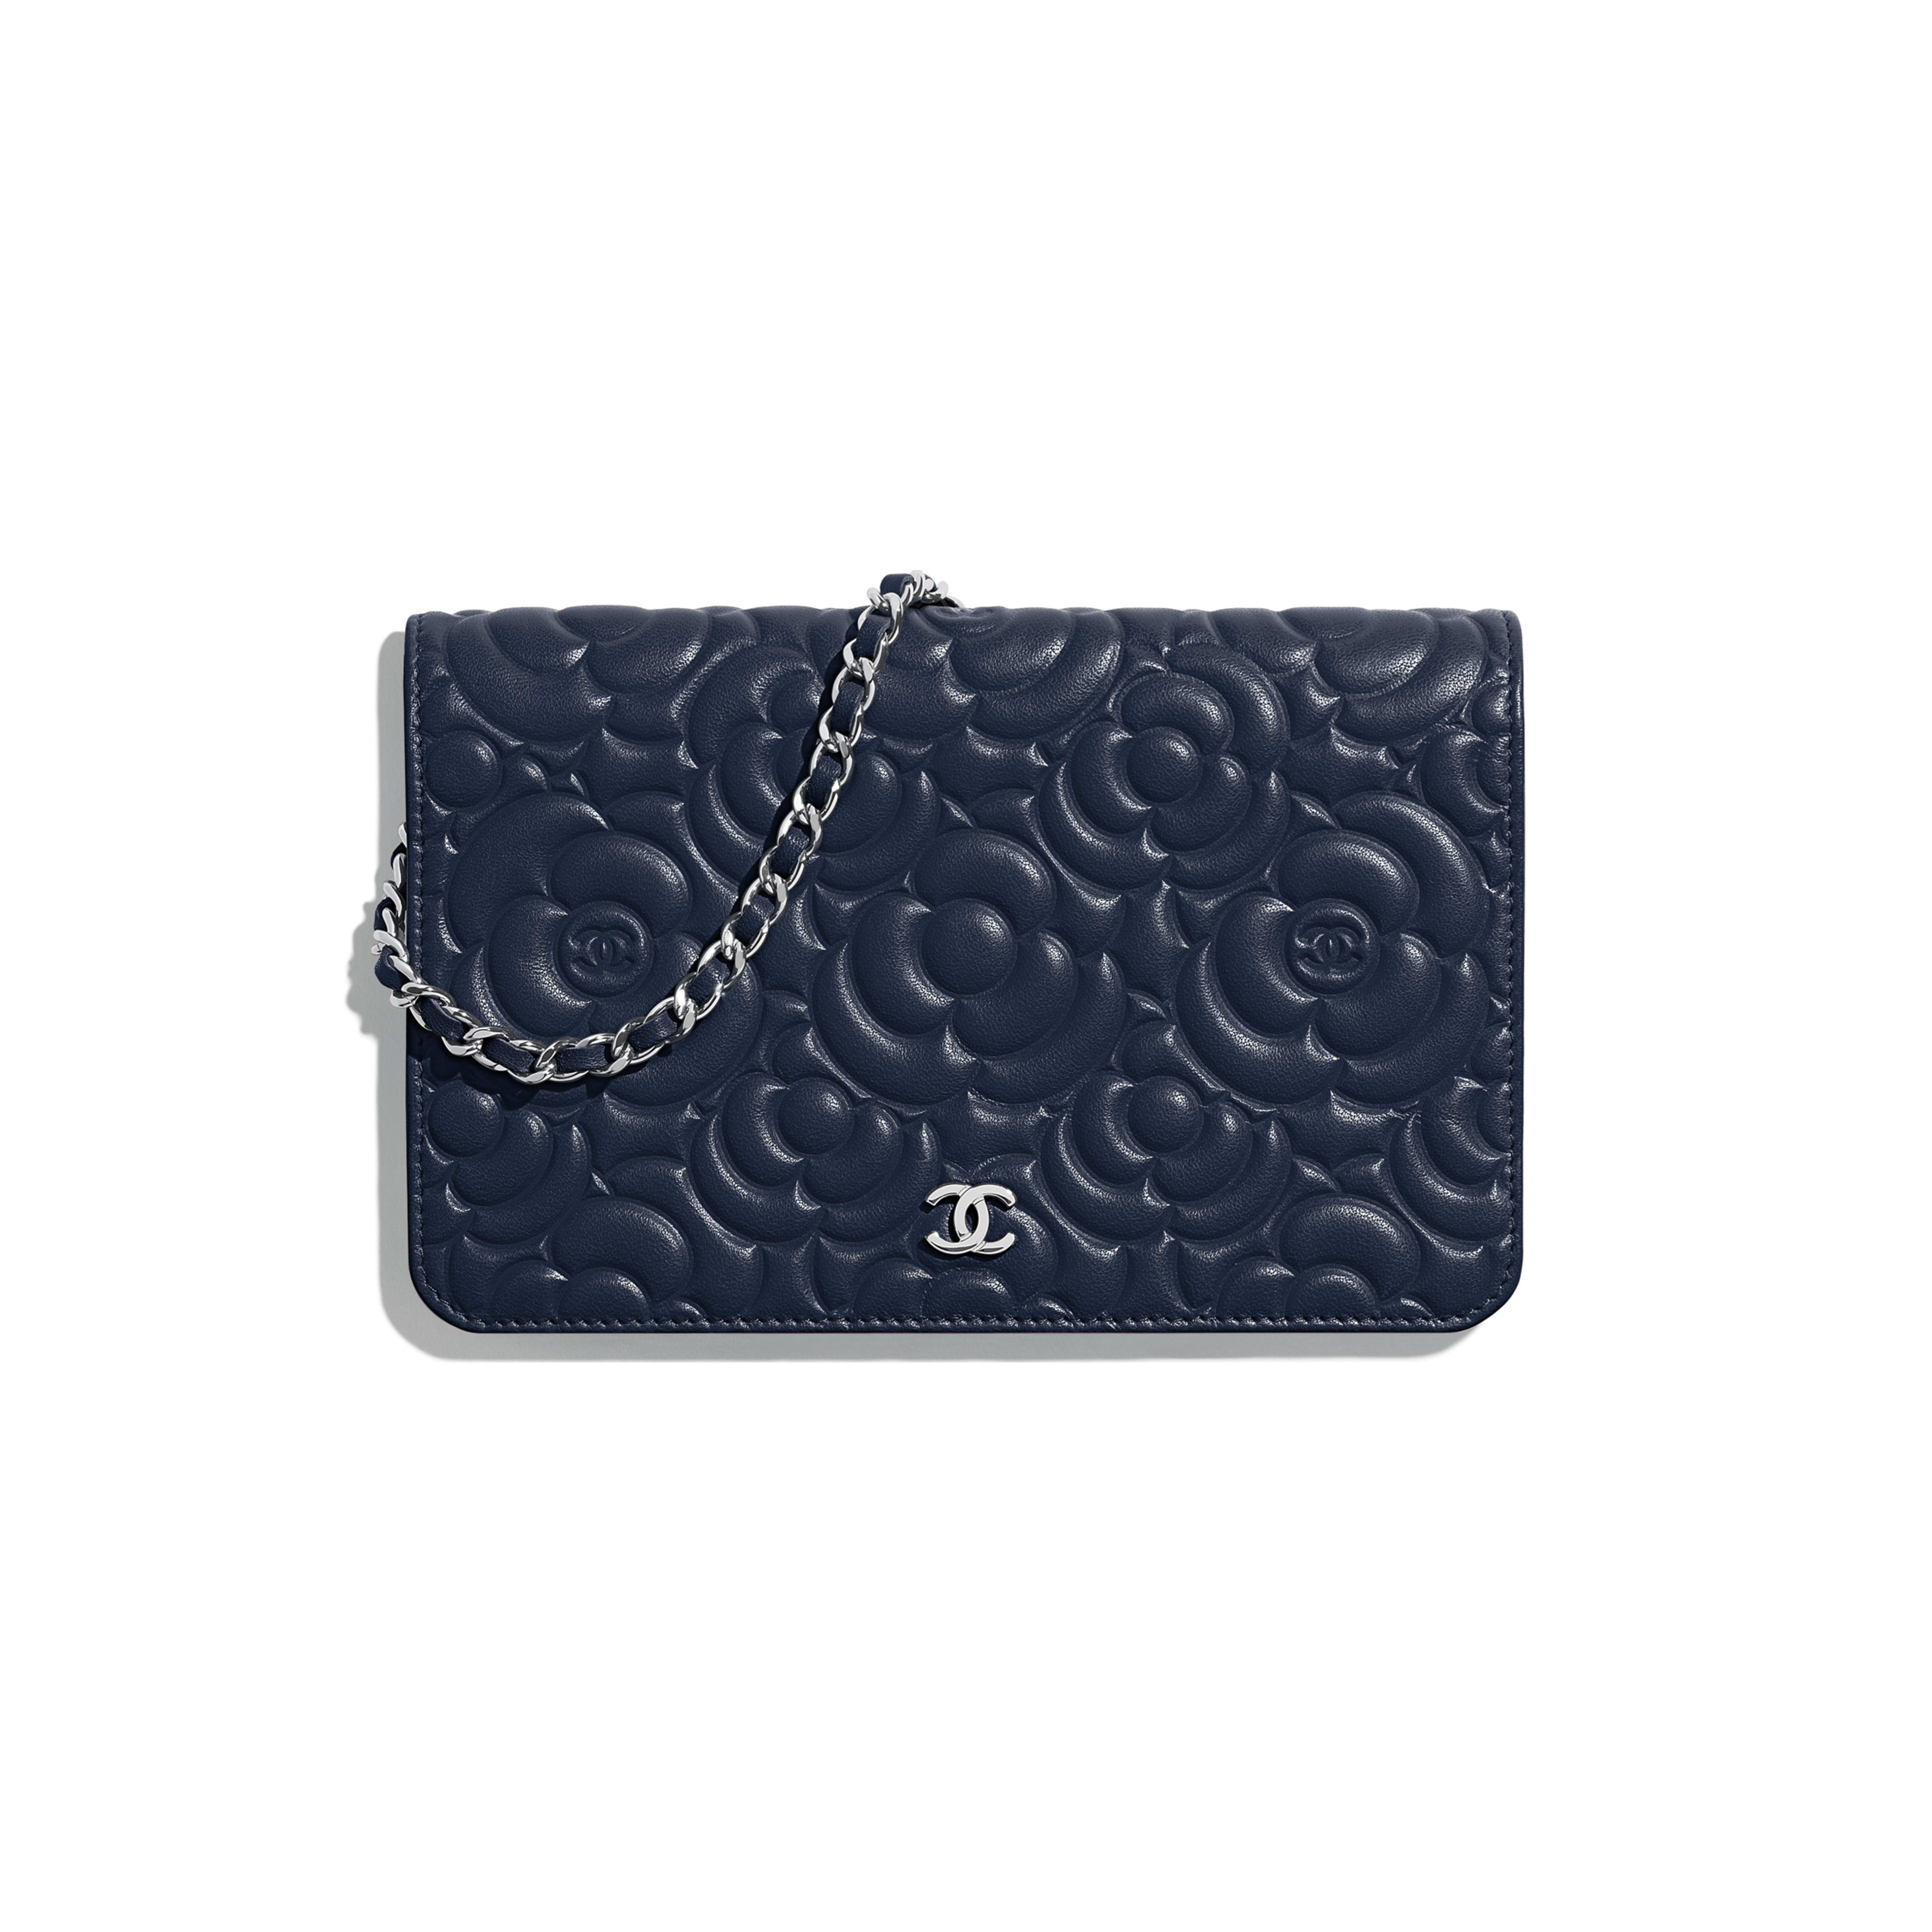 Wallet on Chain - Navy Blue - Lambskin & Silver-Tone Metal - Default view - see full sized version